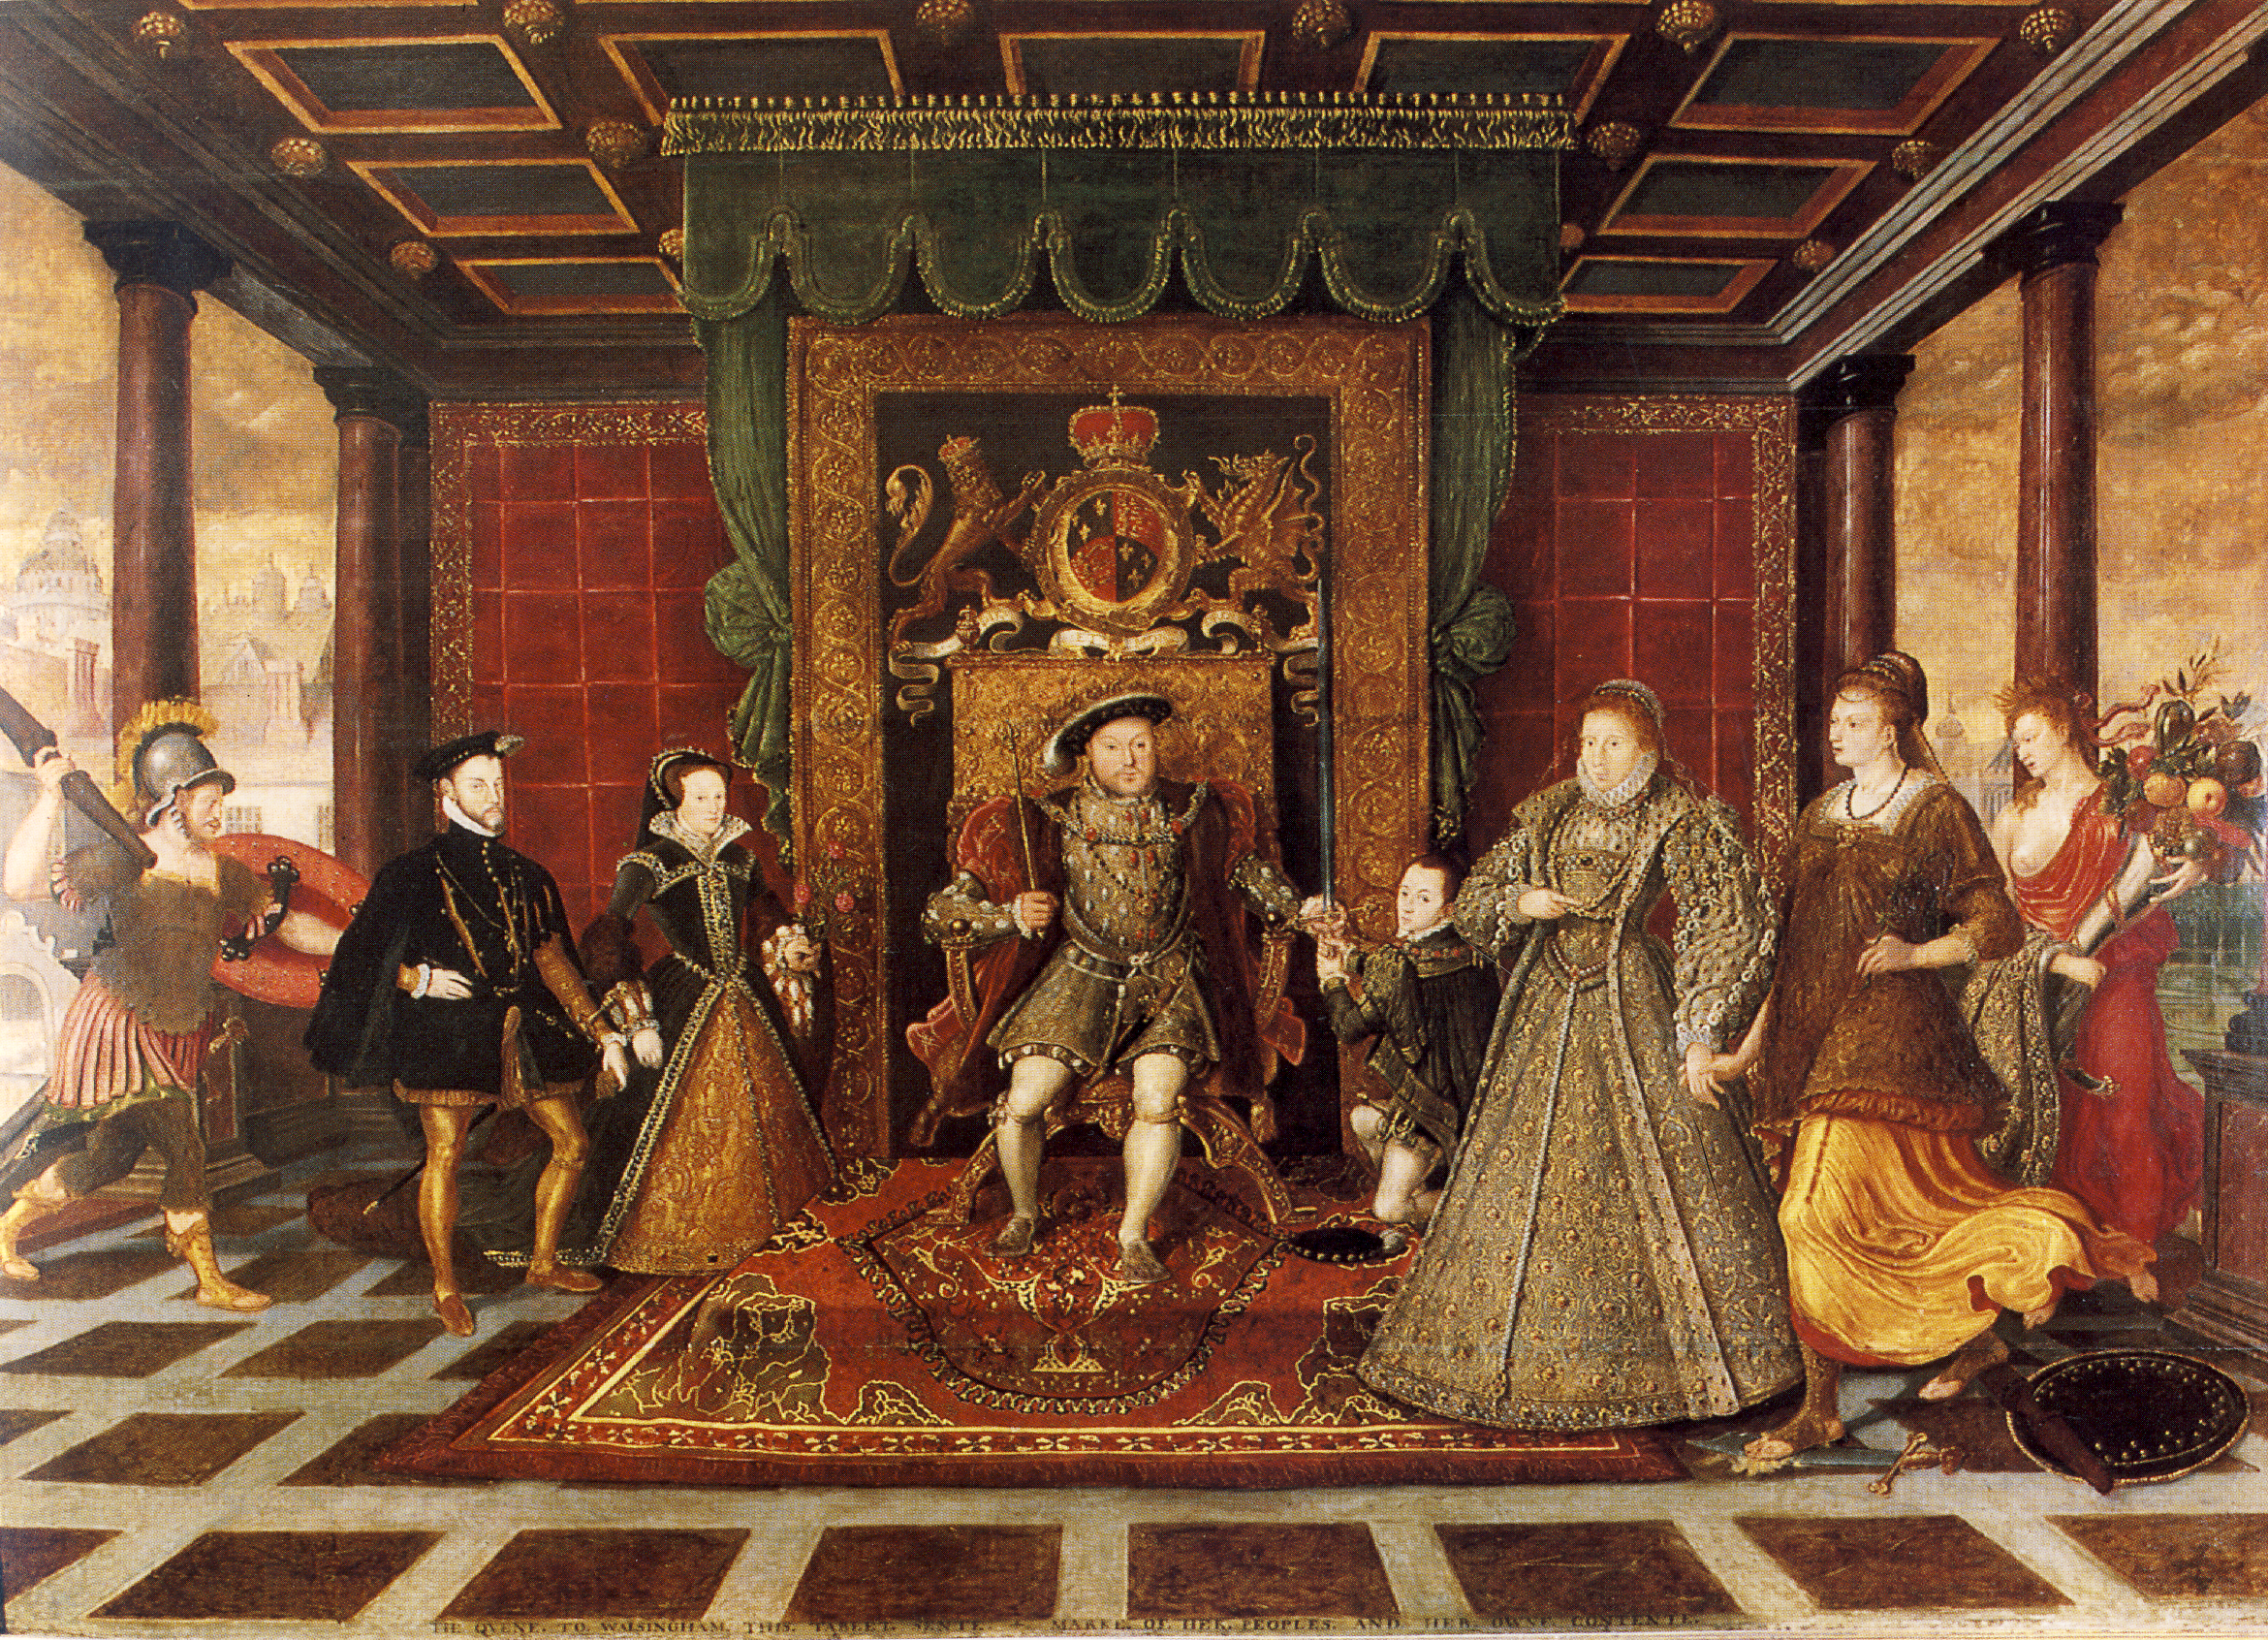 Renaissance and the history of dancing